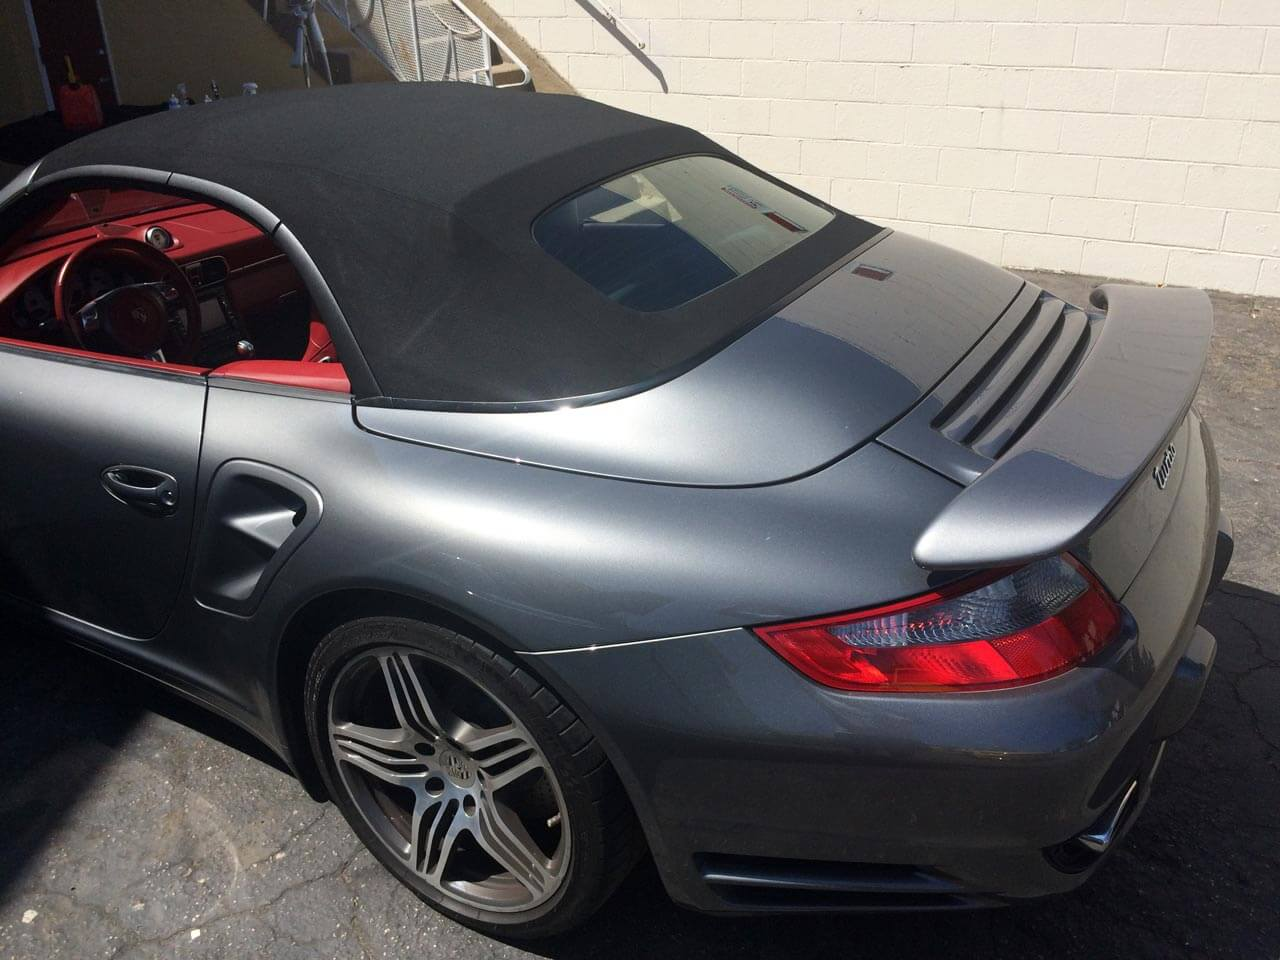 Convertible Top Replacement In Los Angeles Best Way